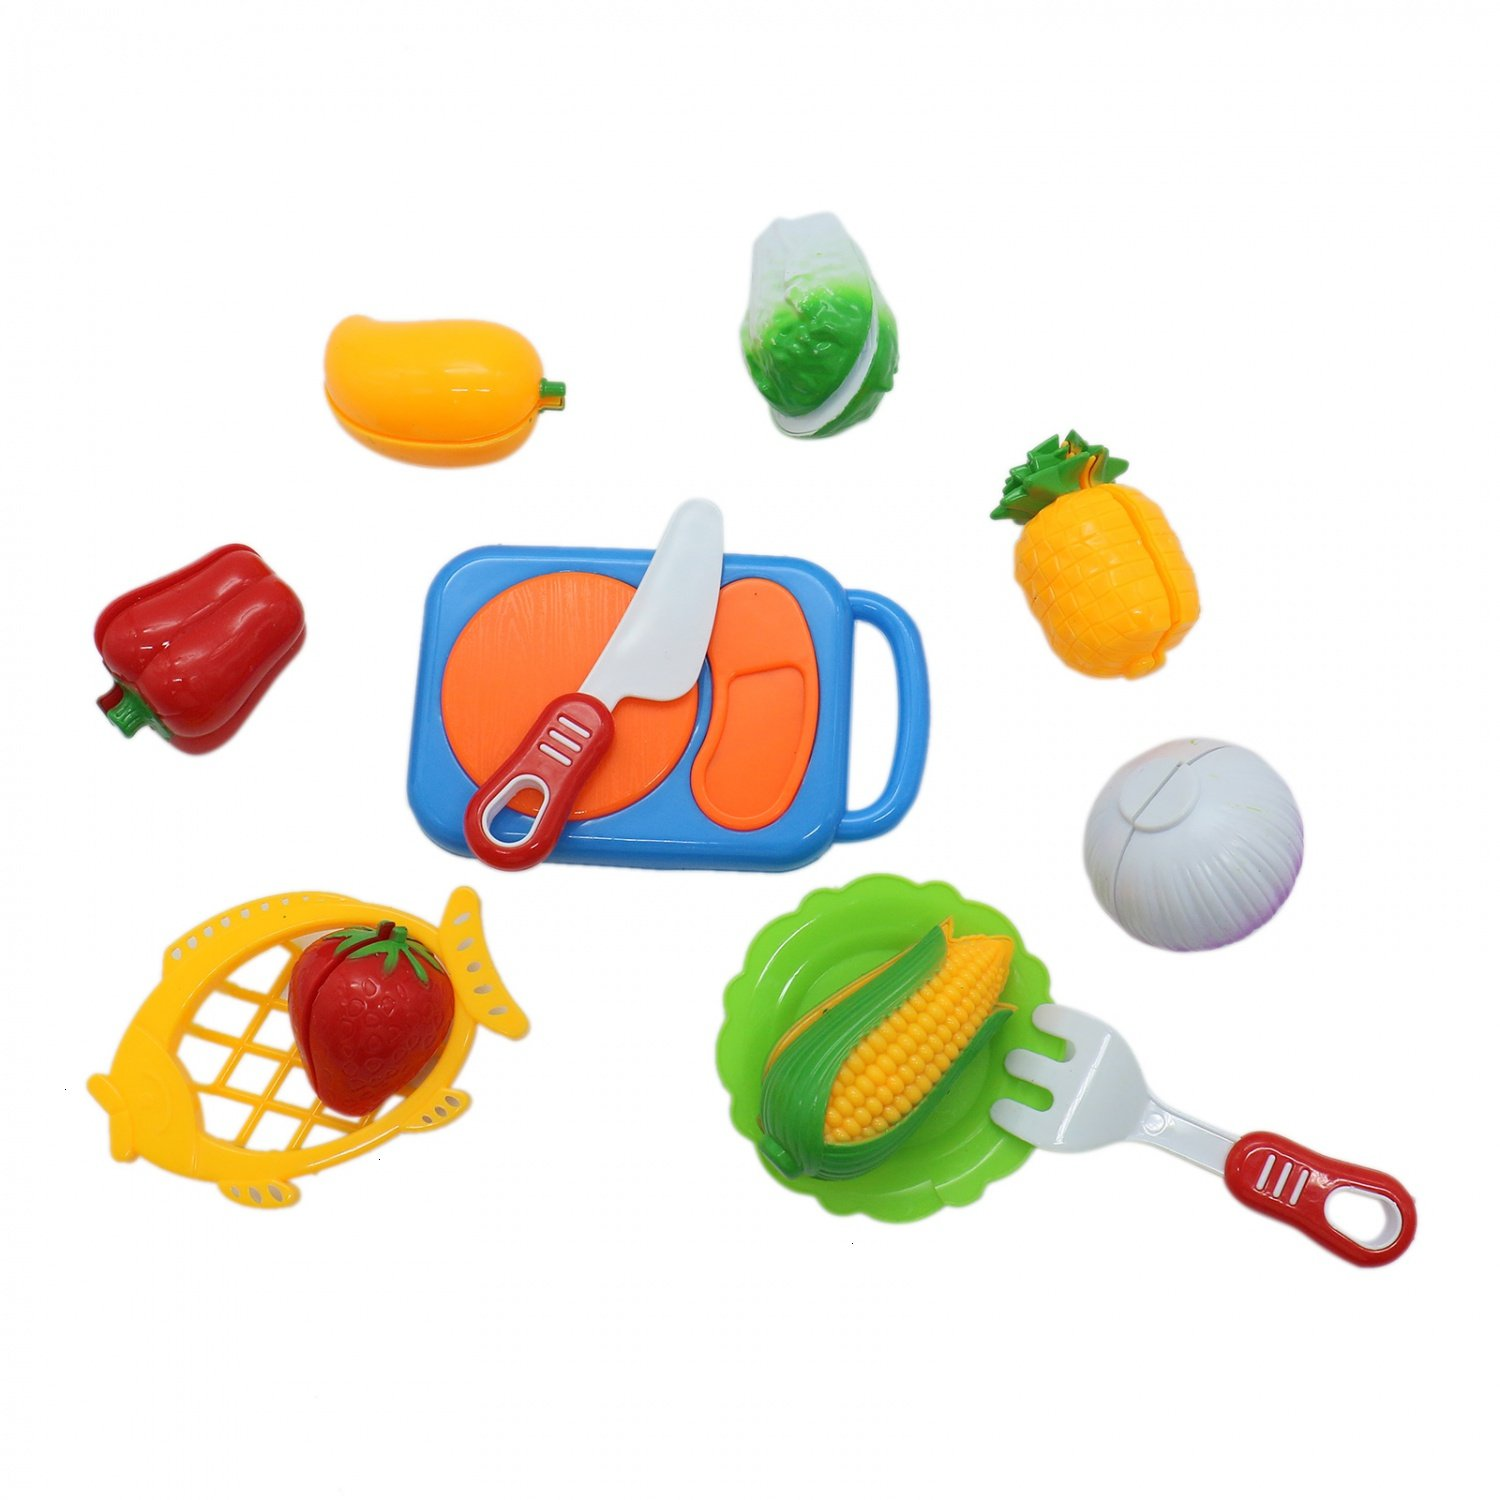 Buorsa Set of 12 Kitchen Fruit Vegetables Food Toy Cutting Set Kids Pretend Role Play Kids Gift Birthday Gift for Children, Assorted Color